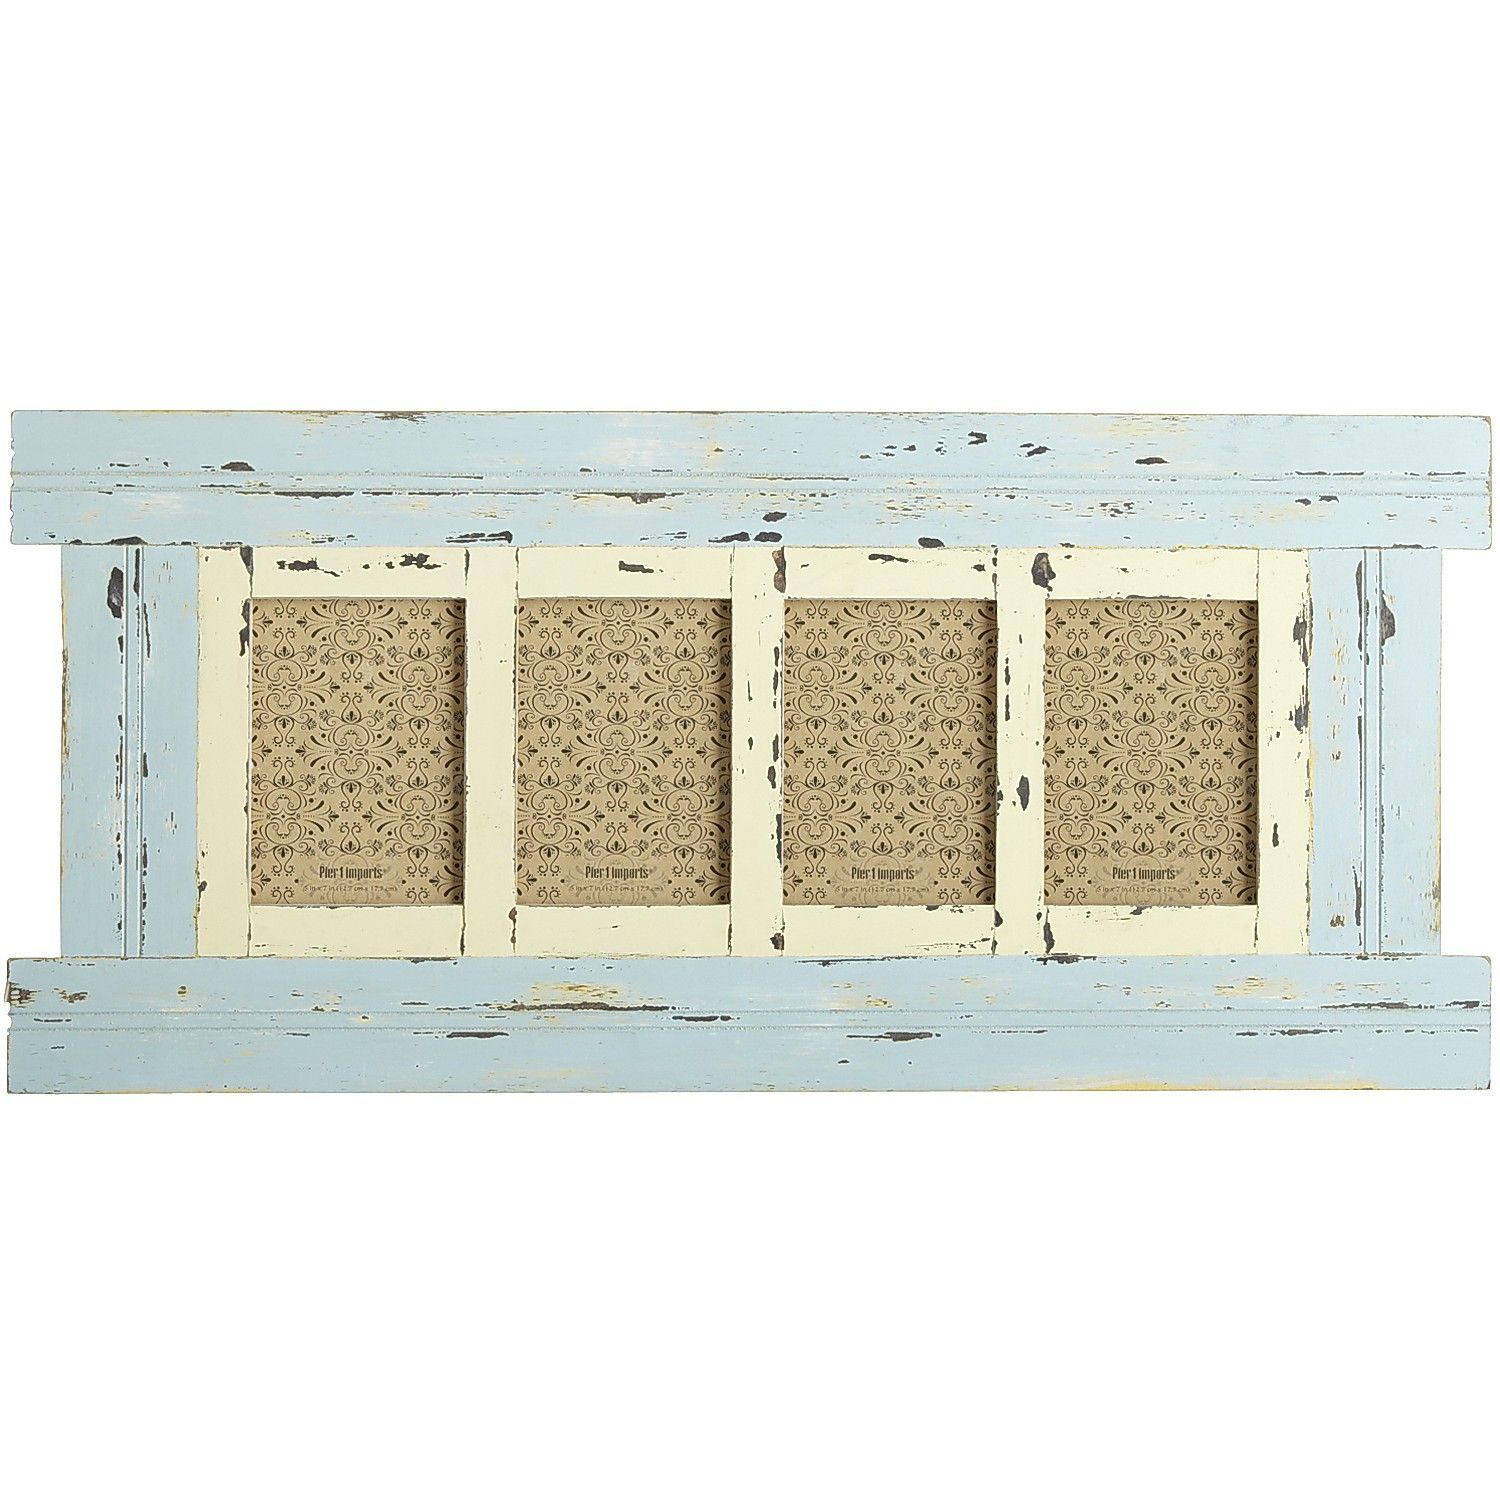 Katie Wall Frame - Oh Pier 1 you know me so well!! | Dream Home ...